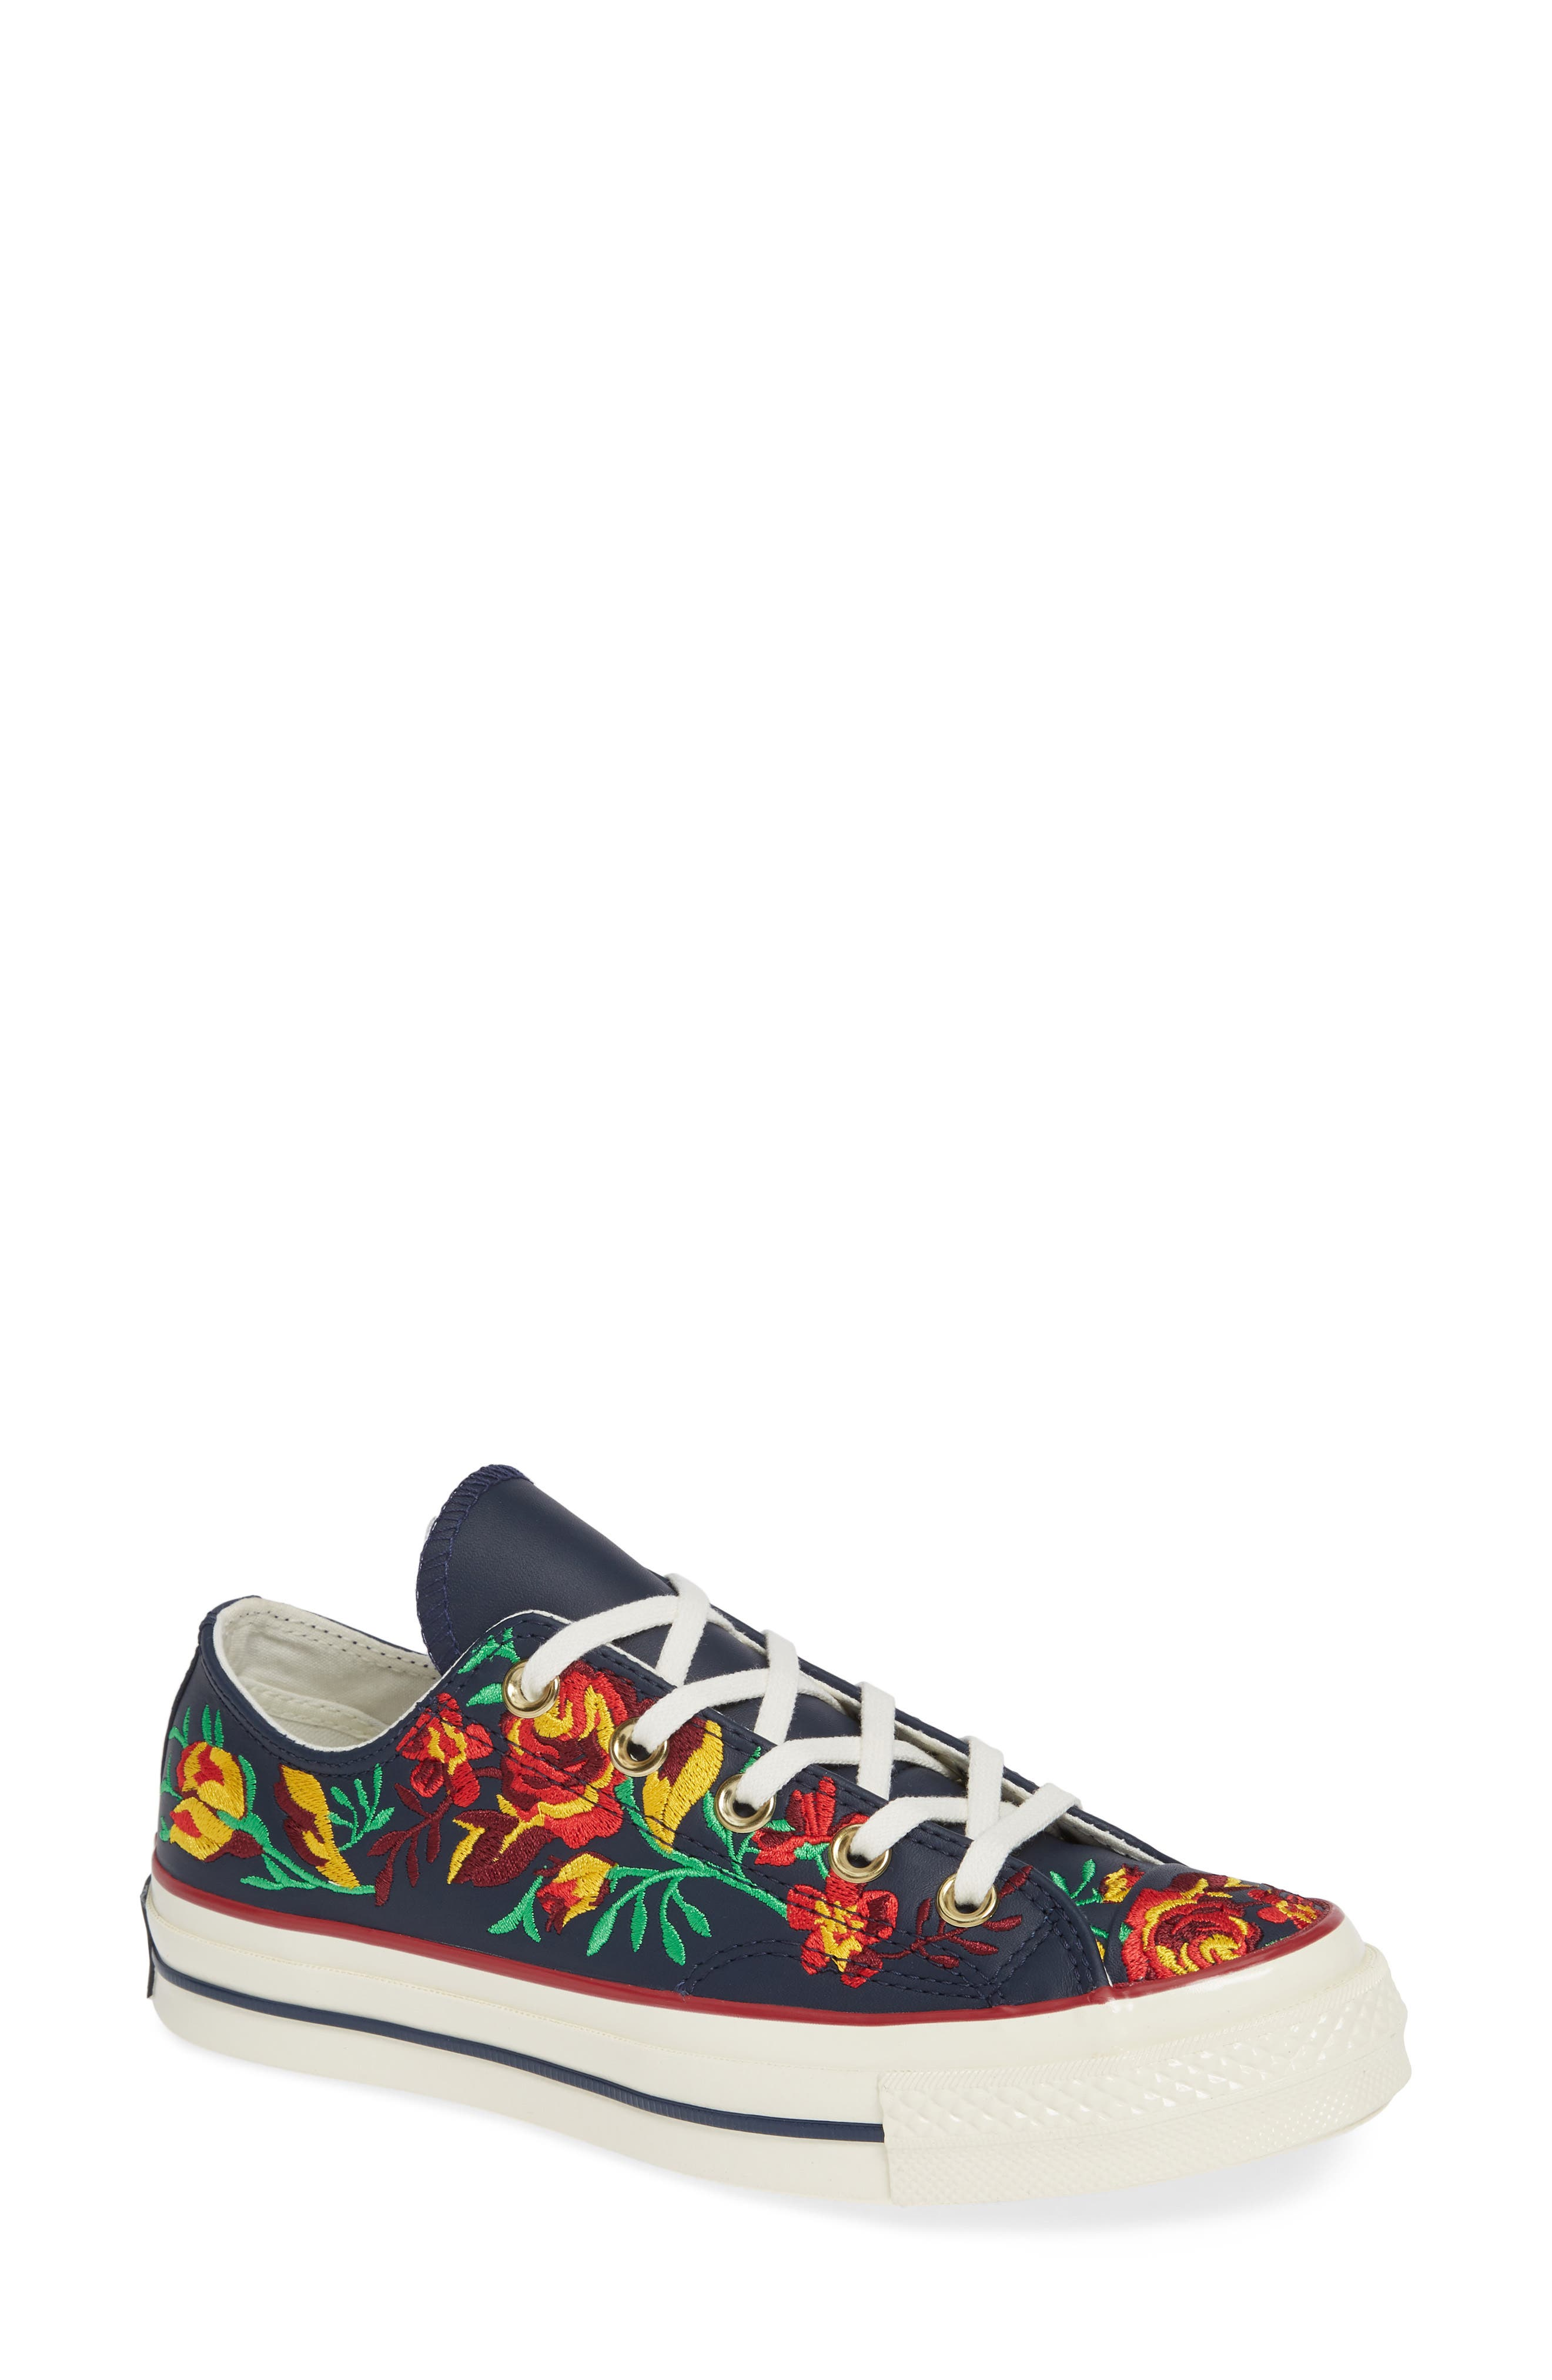 Chuck Taylor<sup>®</sup> All Star<sup>®</sup> Parkway Floral 70 Low Top Sneaker,                             Main thumbnail 1, color,                             OBSIDIAN/ CHERRY LEATHER